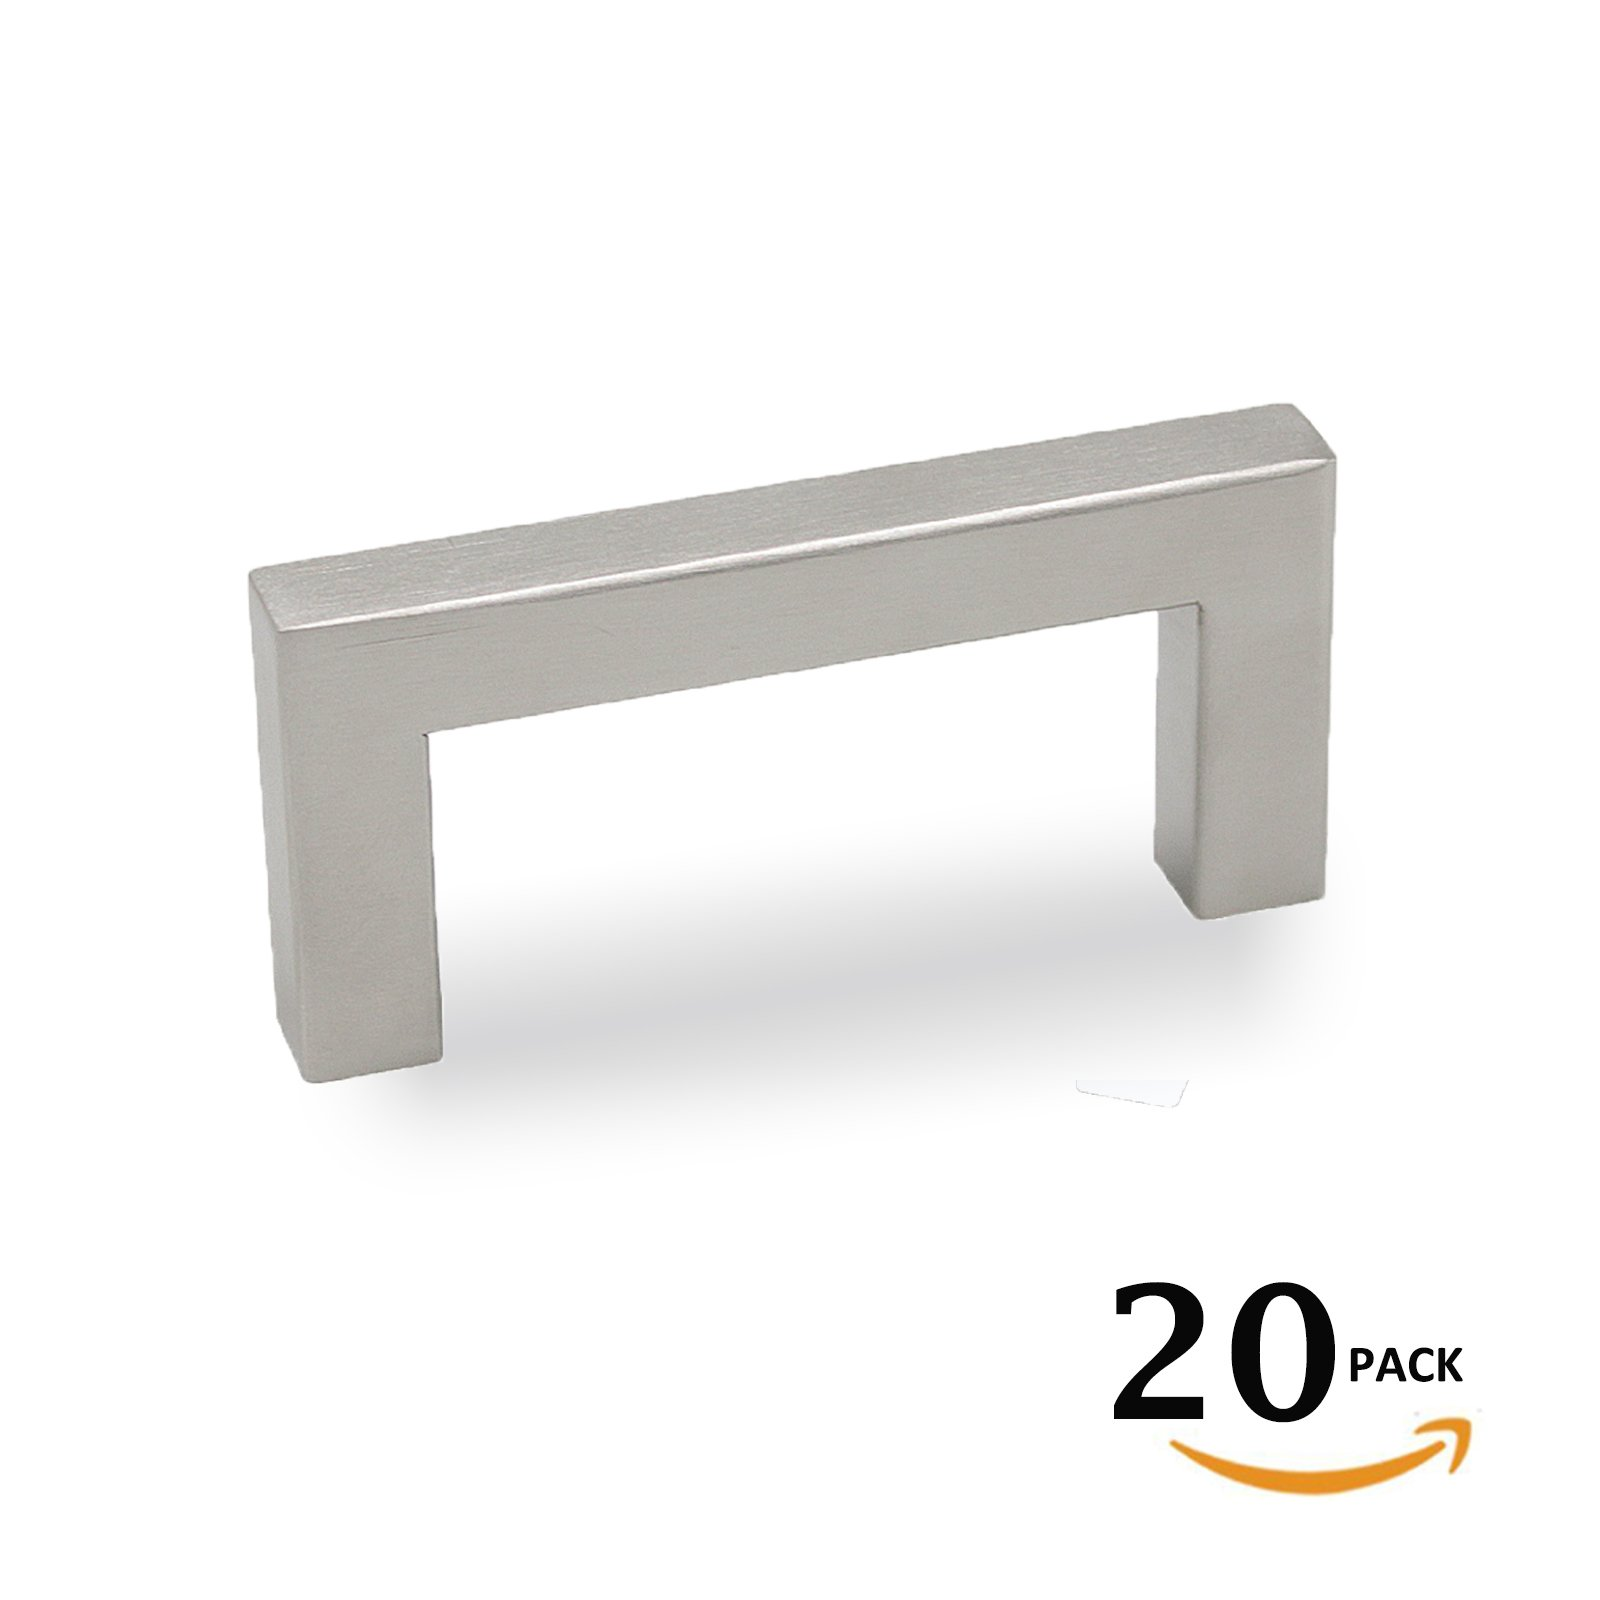 Brushed Nickel Square Stainless Steel 2-1/2''(64mm) Hole Spacing Drawer Dresser Pull Kitchen Cabinet Handle and knob 20Pack,Width 10mm